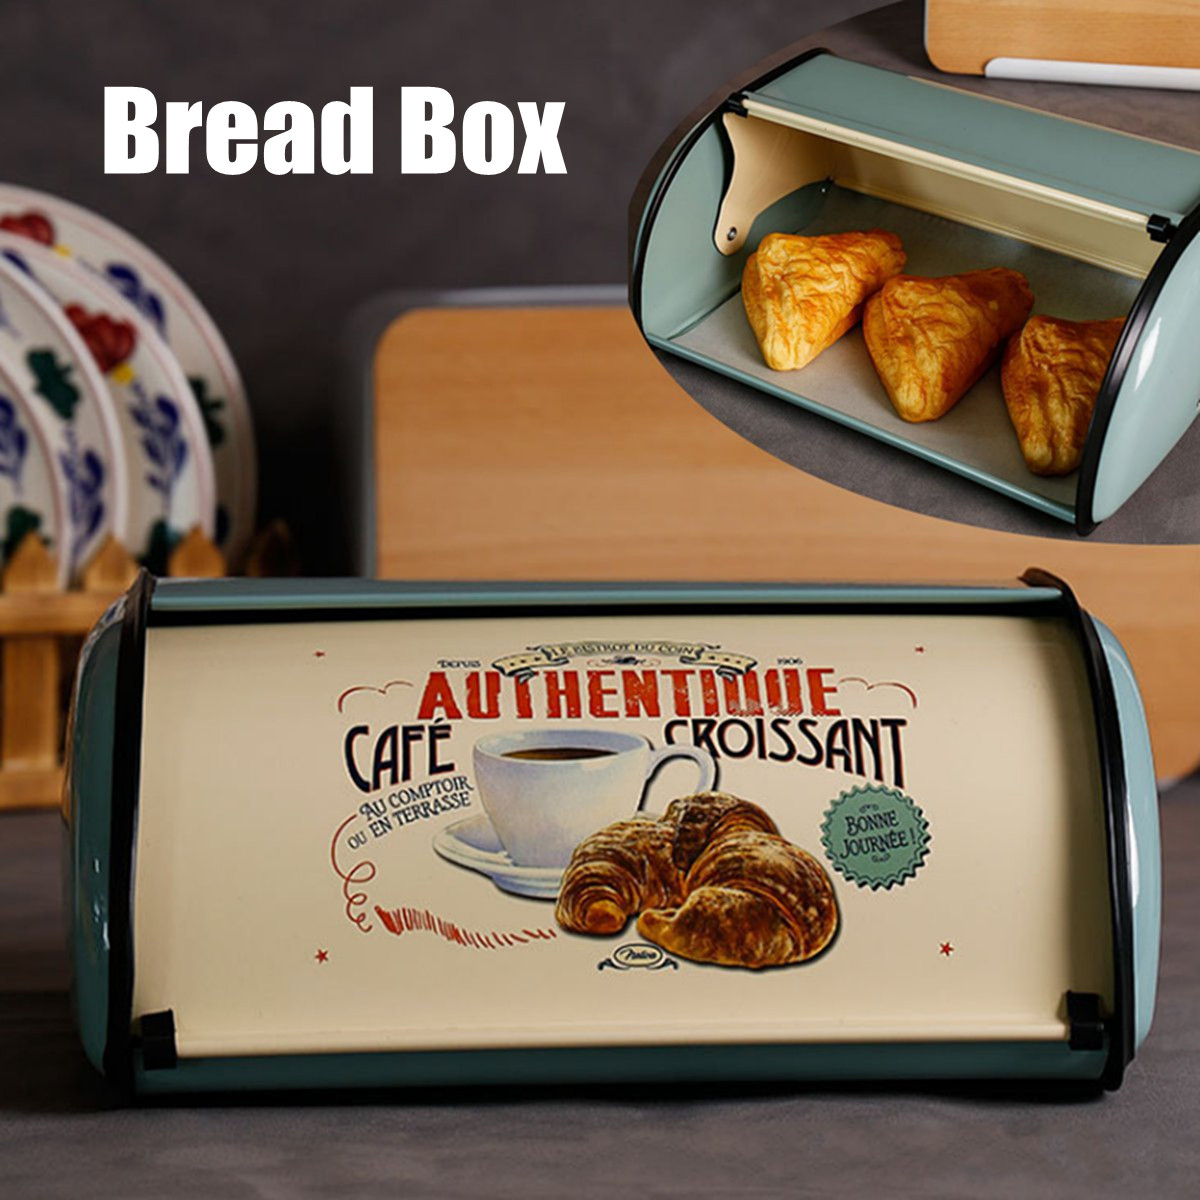 French Vintage Blue Bread Box Storage Bin Keeper Food Kitchen Container Galvanized Iron Snack Boxes For Home Decor 32X22X14cmFrench Vintage Blue Bread Box Storage Bin Keeper Food Kitchen Container Galvanized Iron Snack Boxes For Home Decor 32X22X14cm